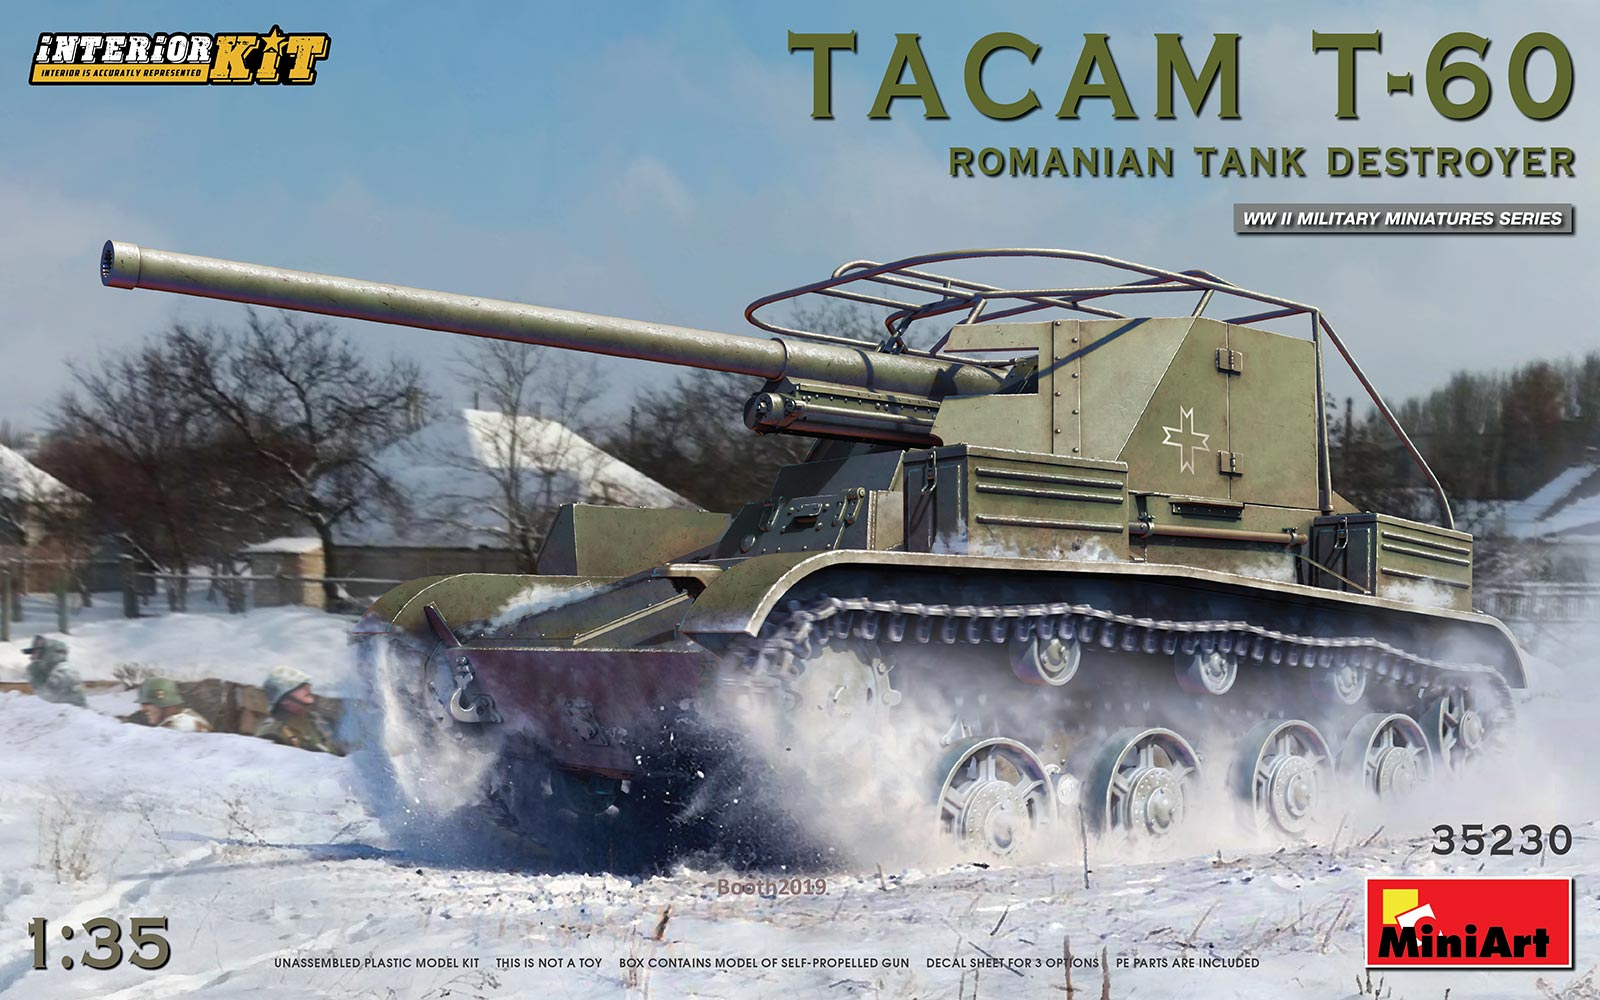 MiniArt Tacam T-60 Romanian Tank Destroyer. Interior Kit